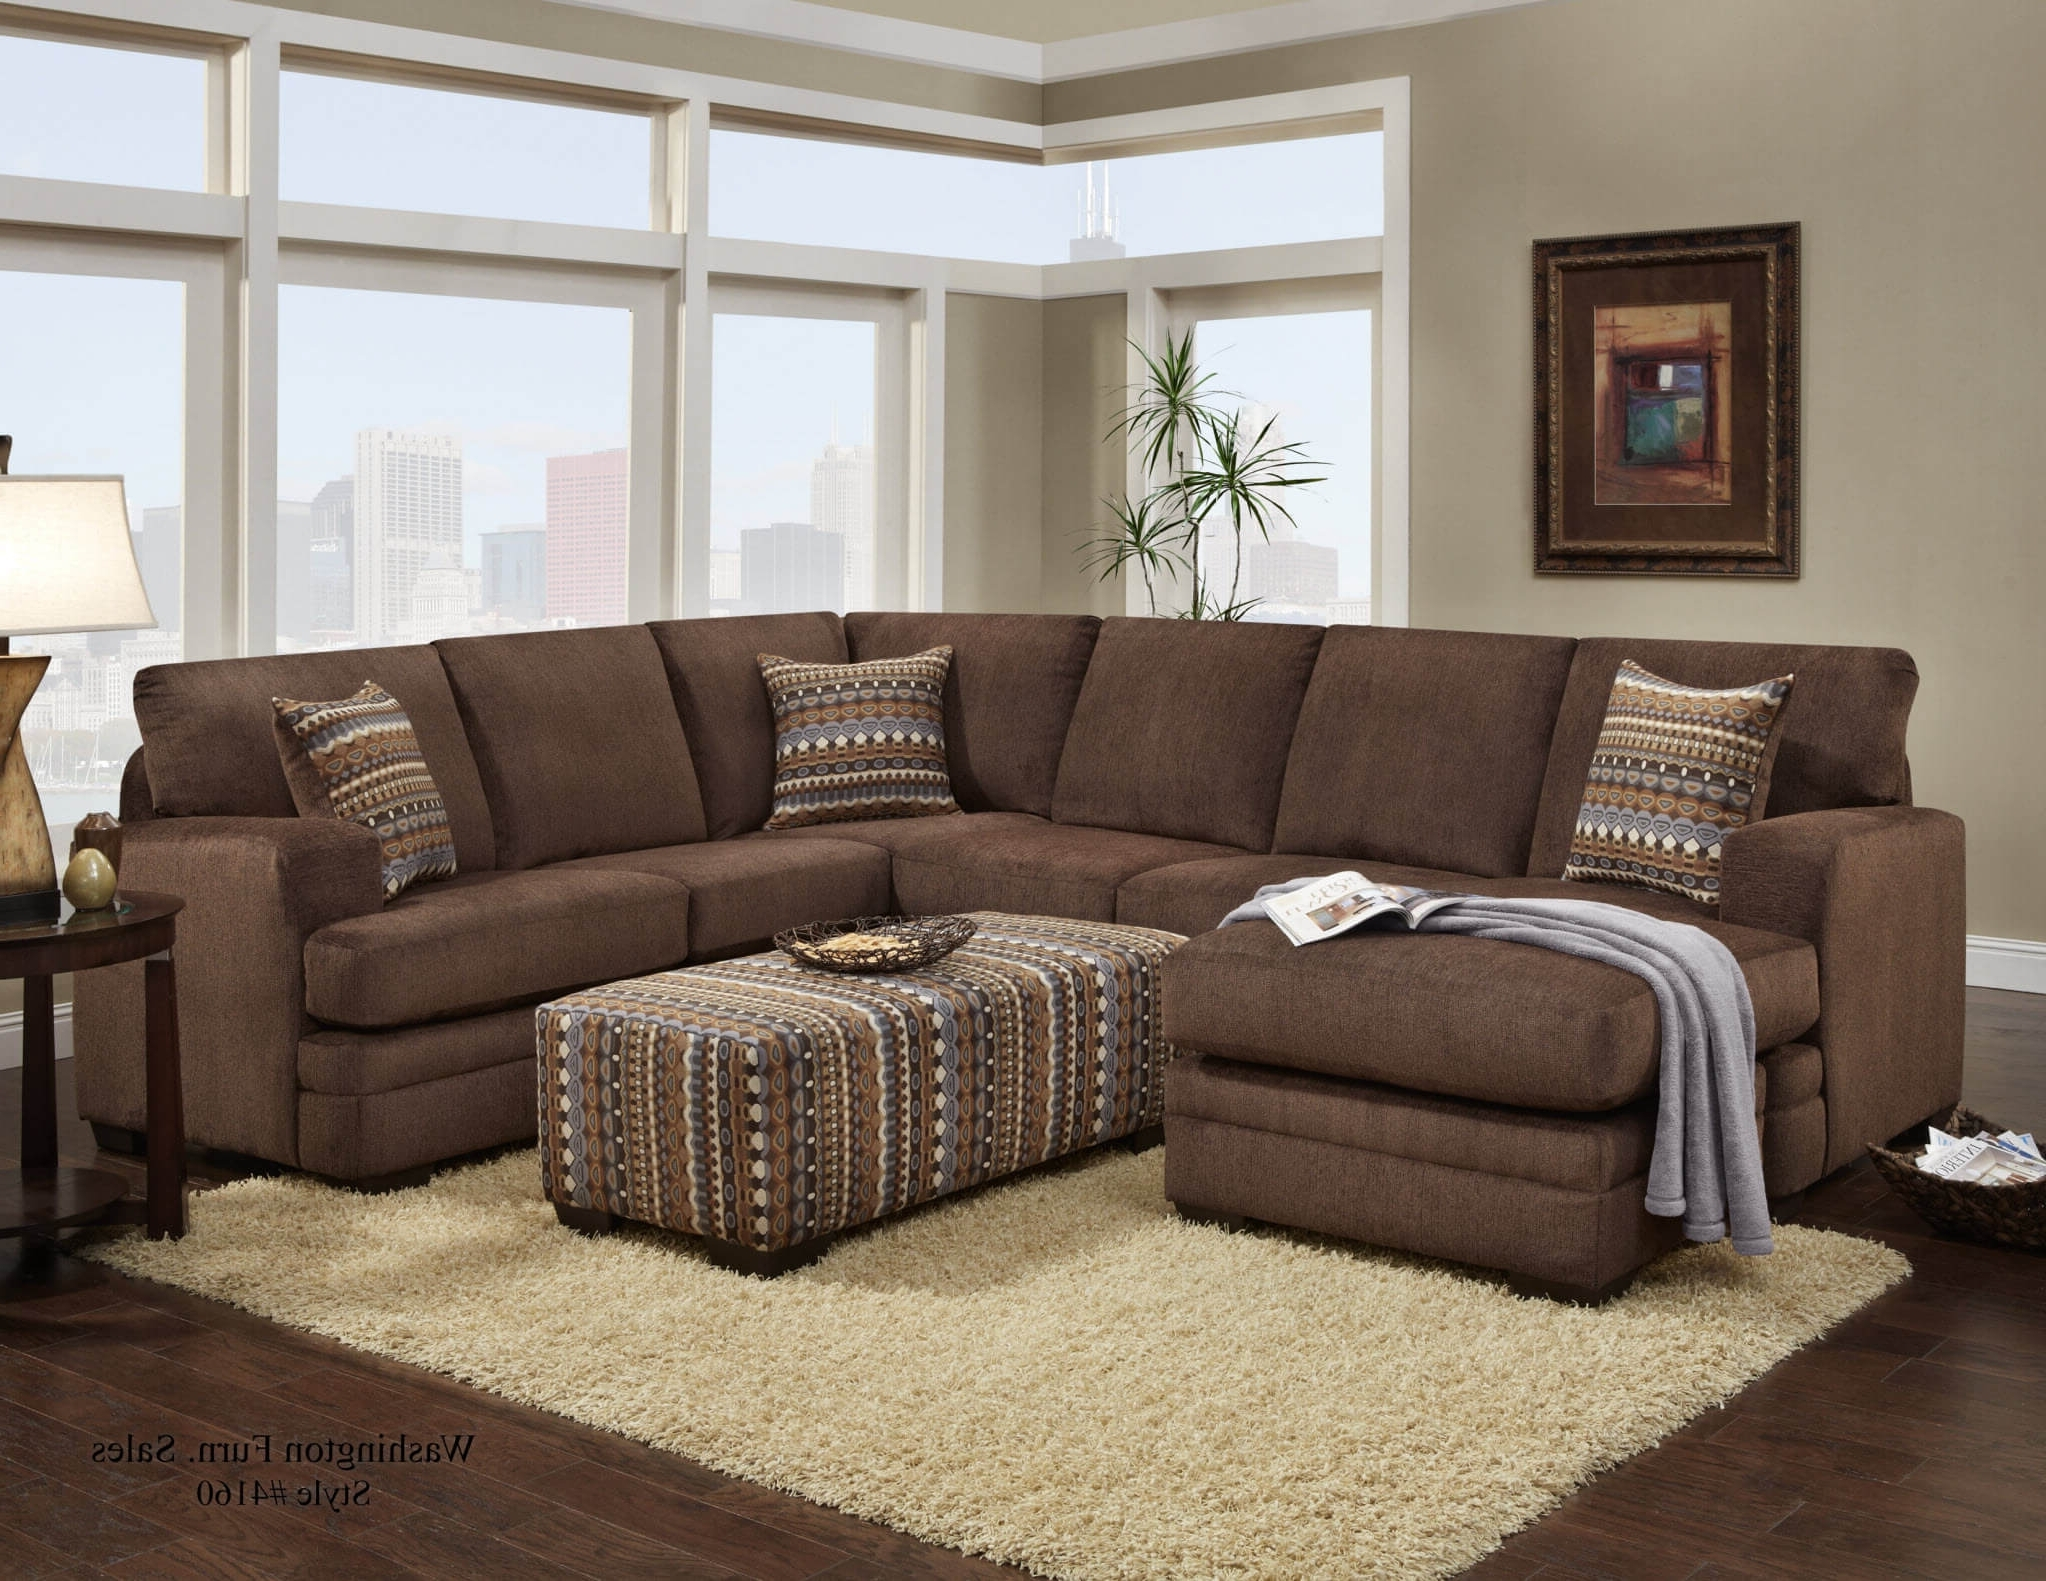 Sectional Sofa Sets In Most Recent Chocolate Sectional Sofas (View 3 of 15)